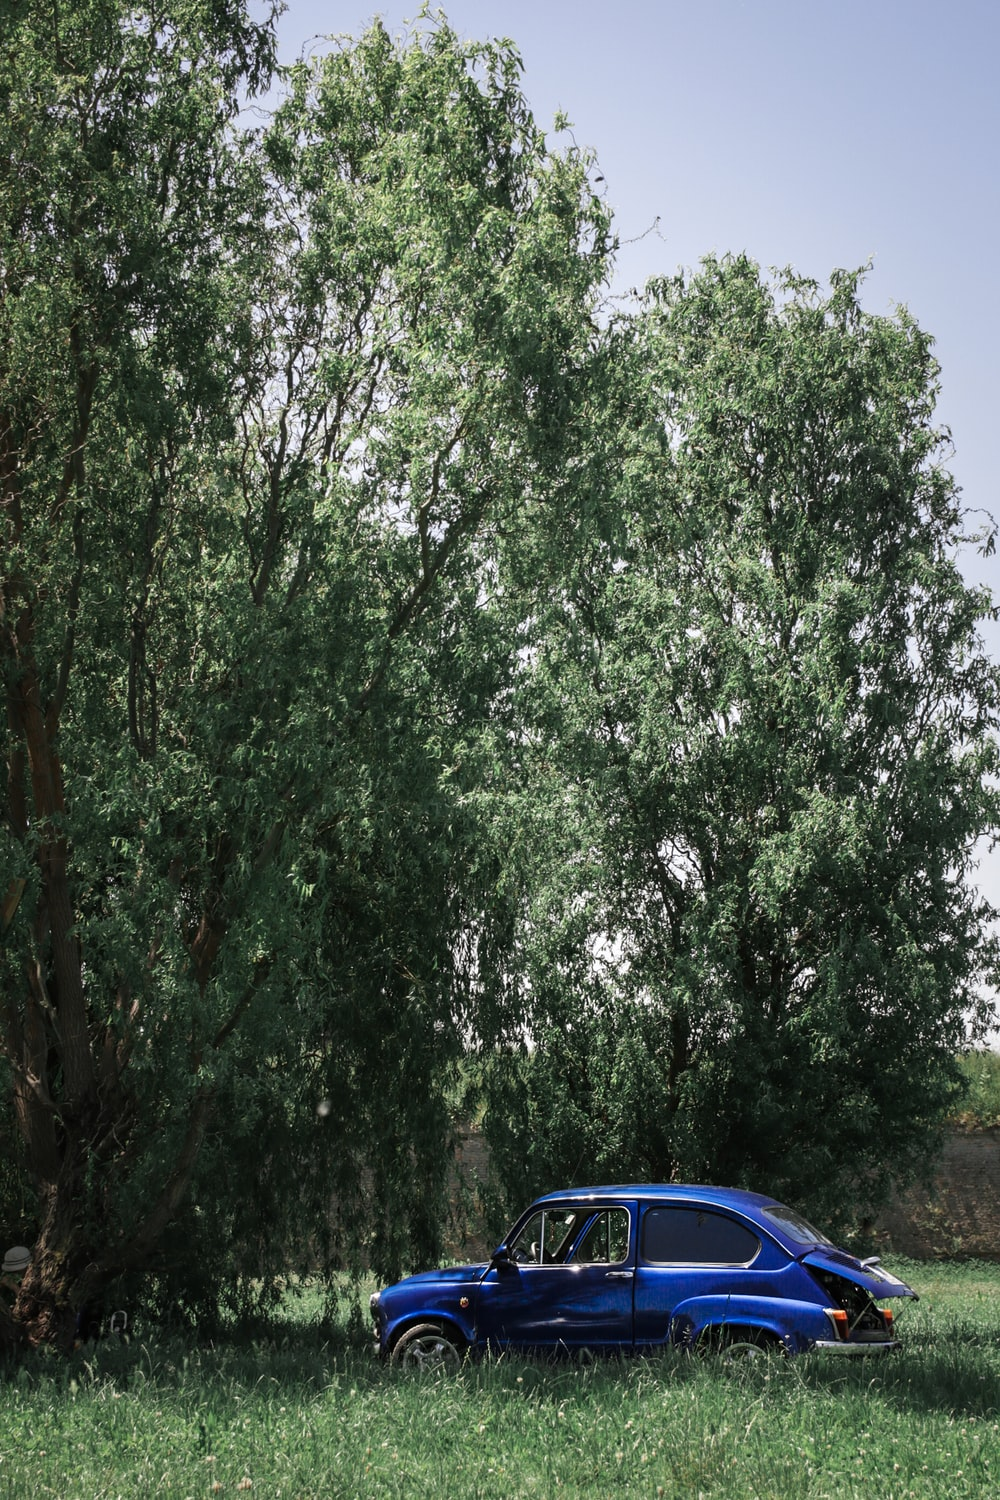 blue coupe near green-leafed trees